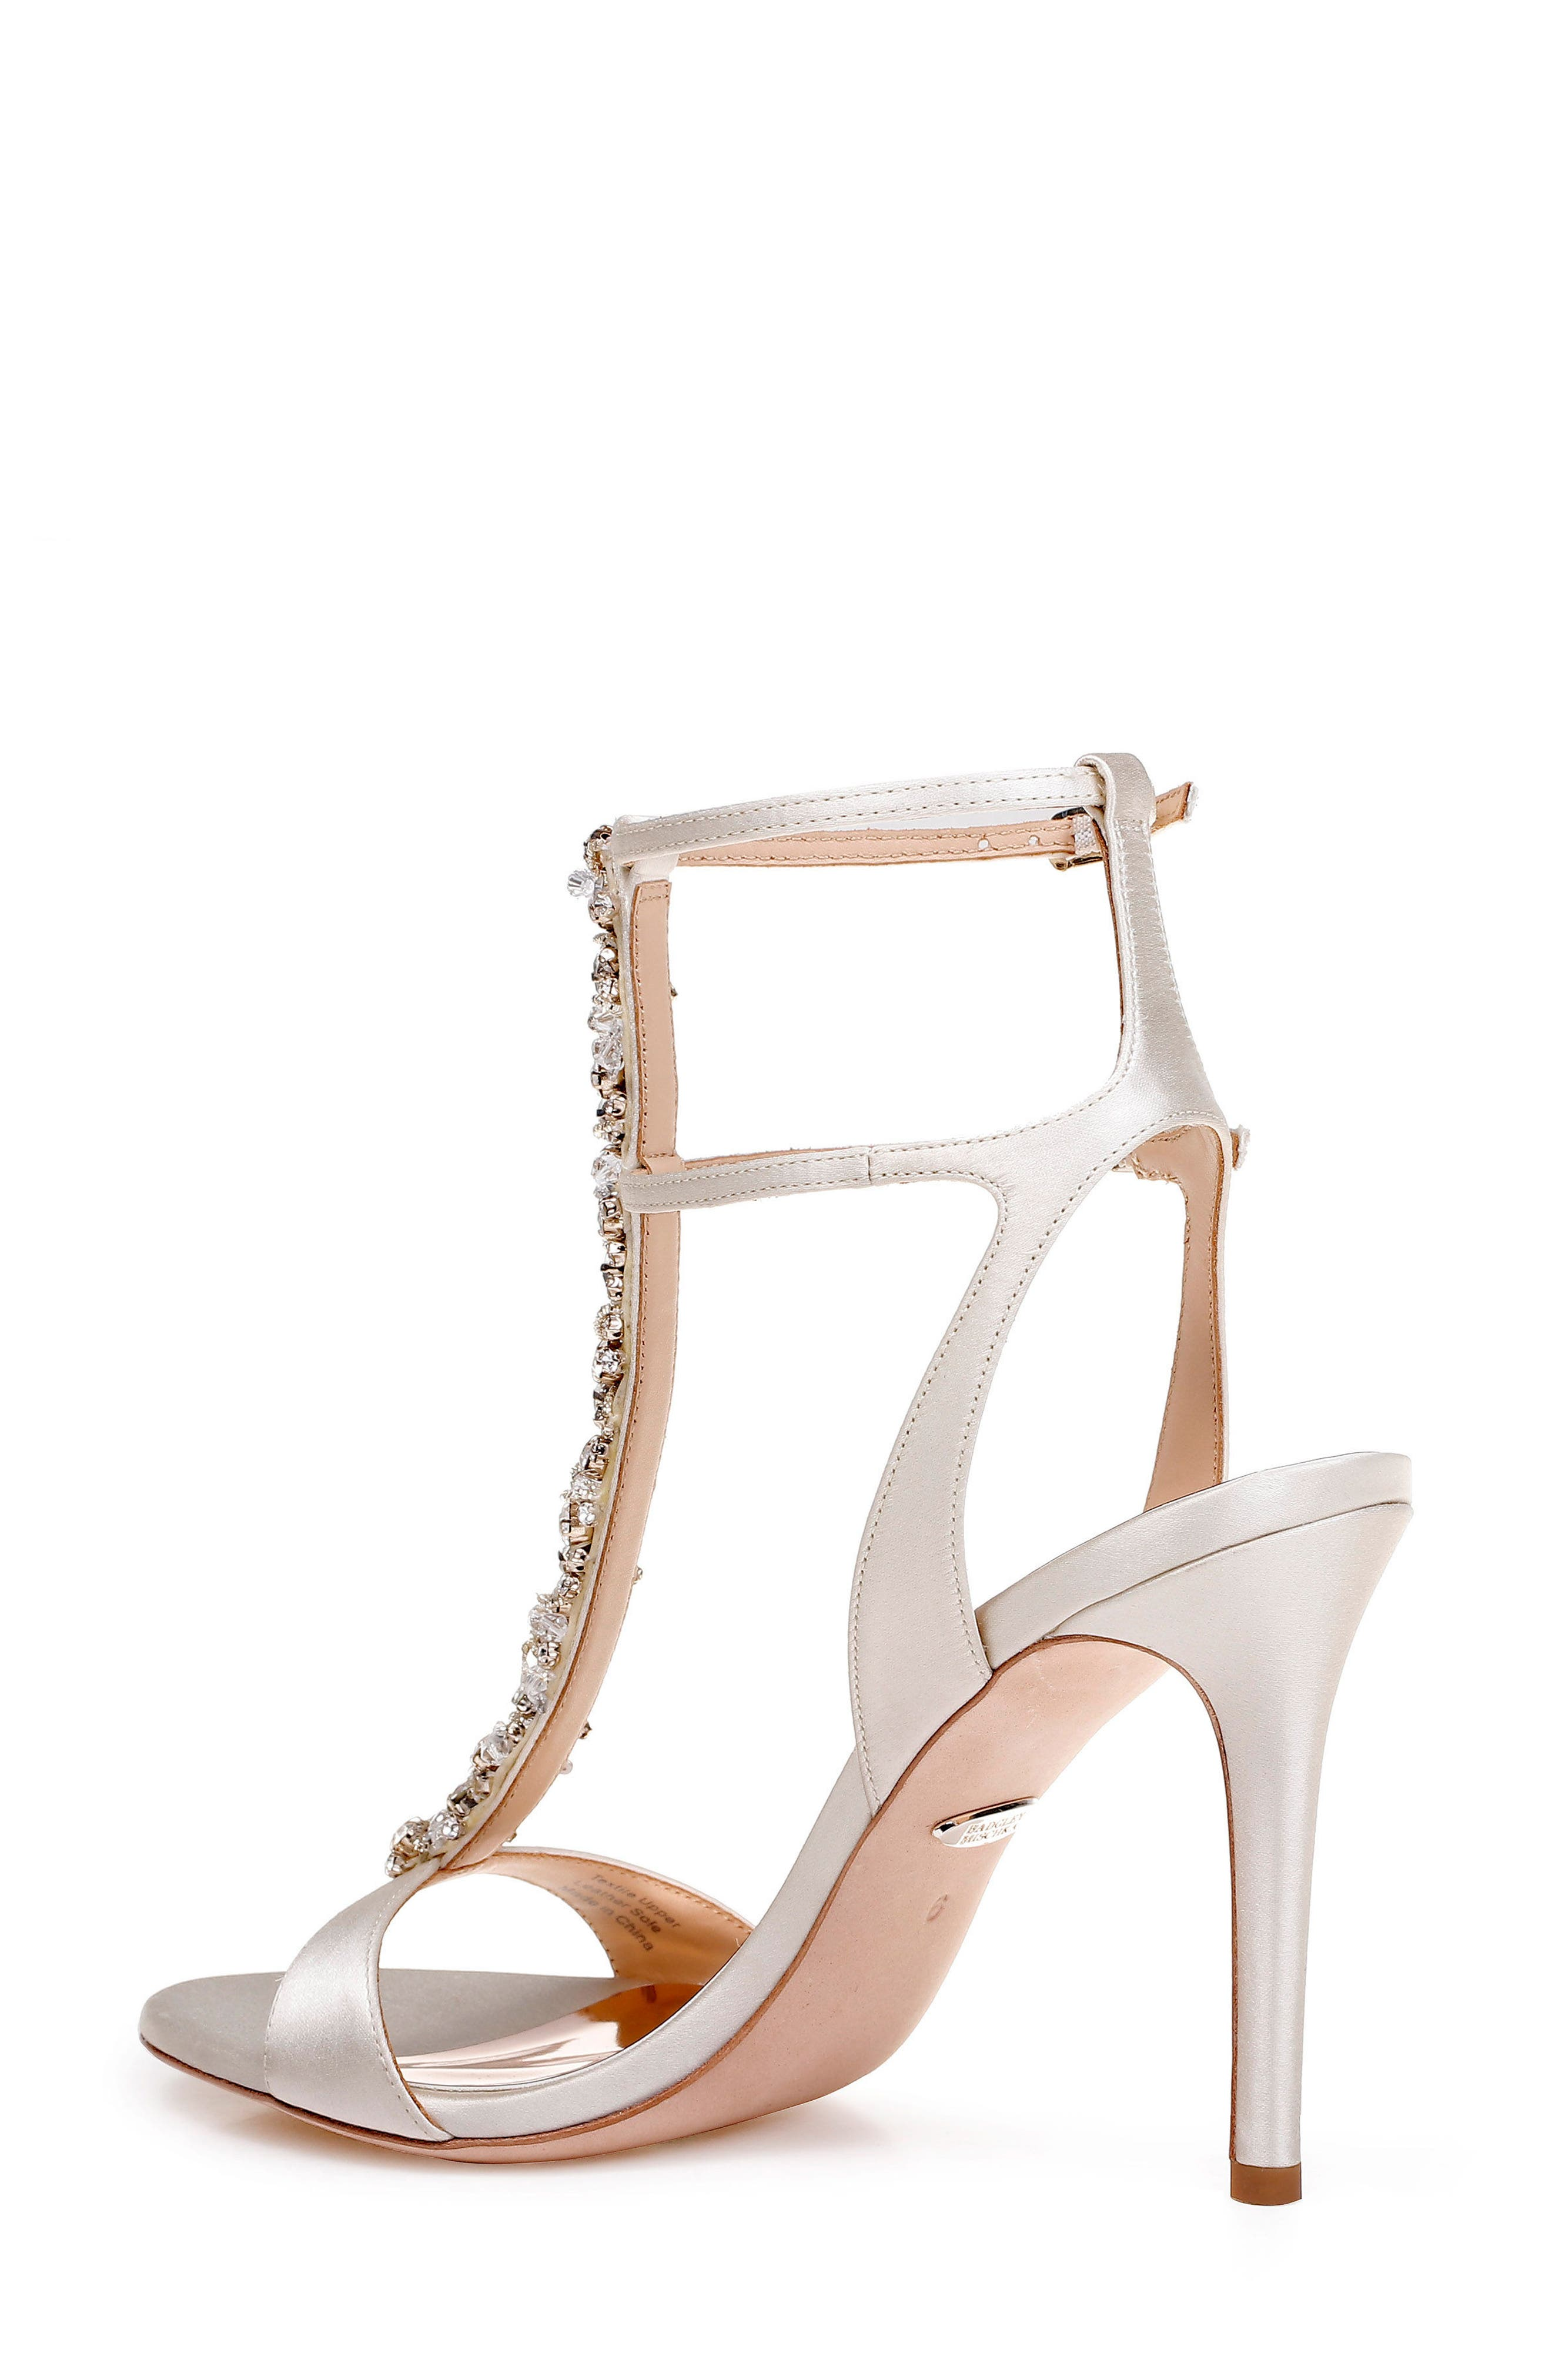 Hollow T-Strap Embellished Sandal,                             Alternate thumbnail 2, color,                             Ivory Leather